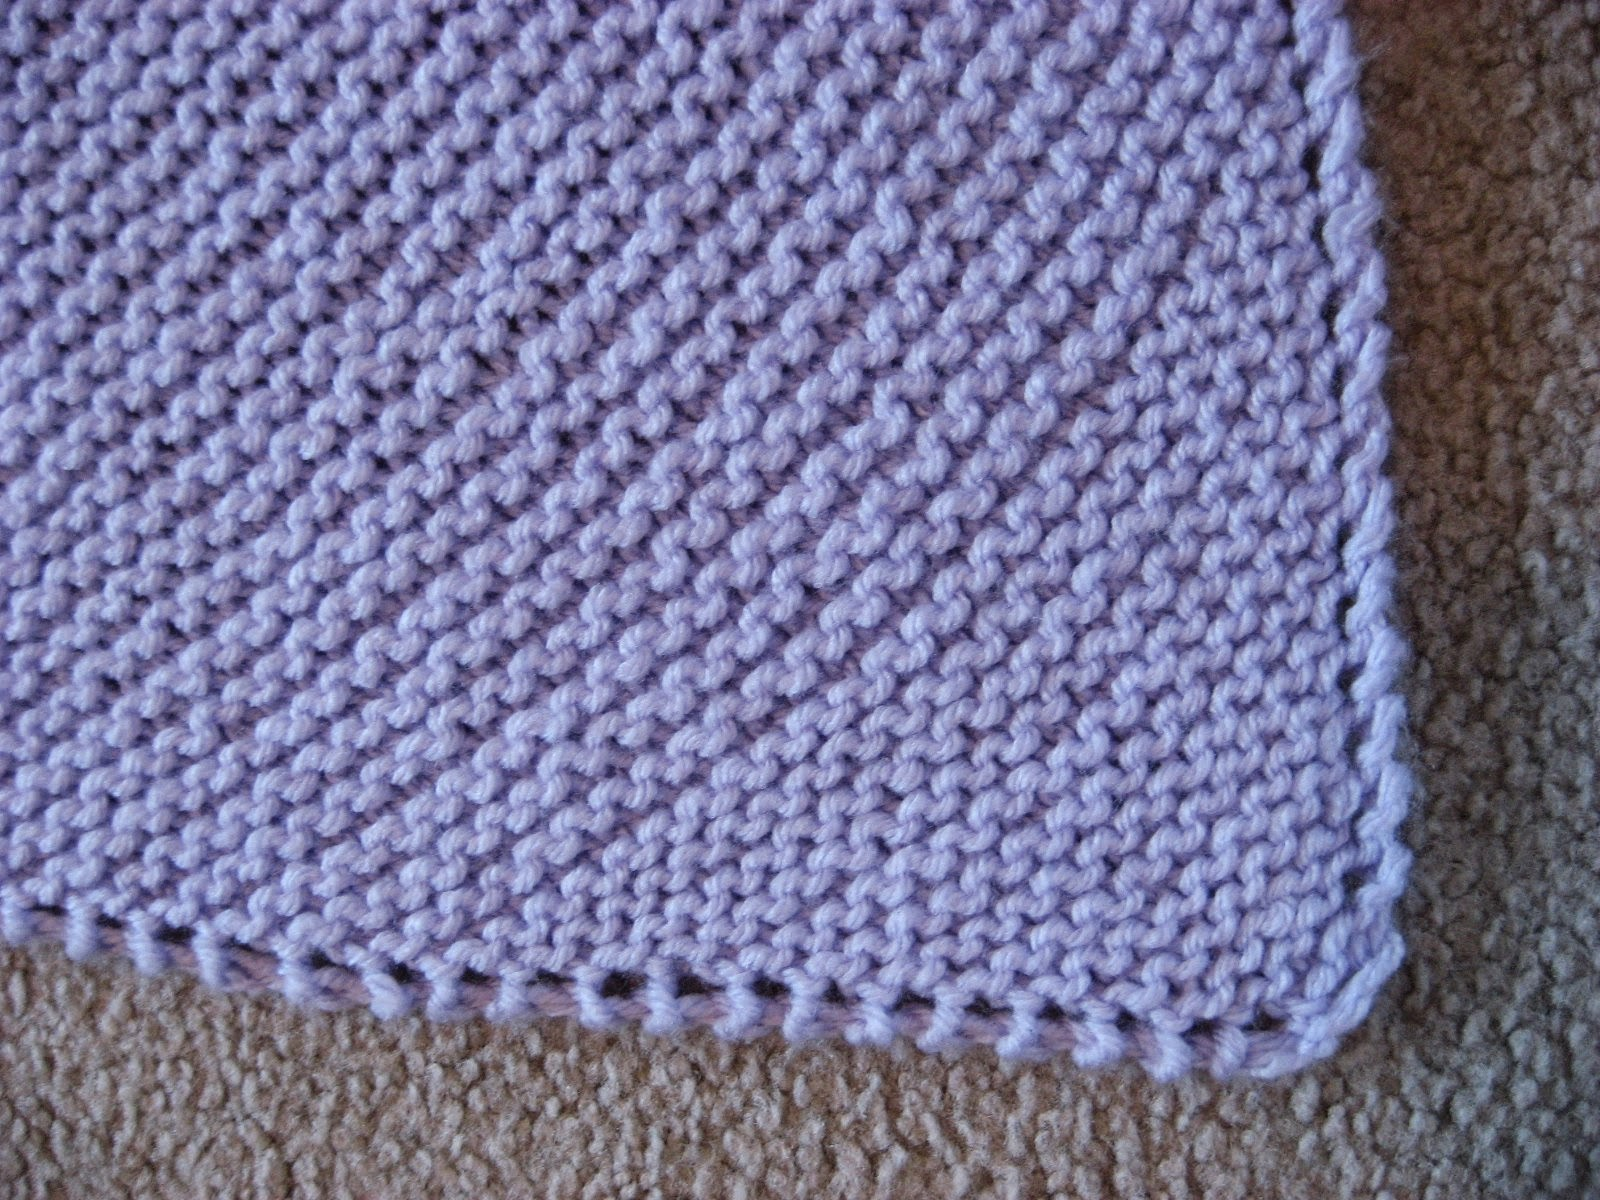 Hooked on Needles: Easy Knitted Baby Blanket ~ Instructions Included!